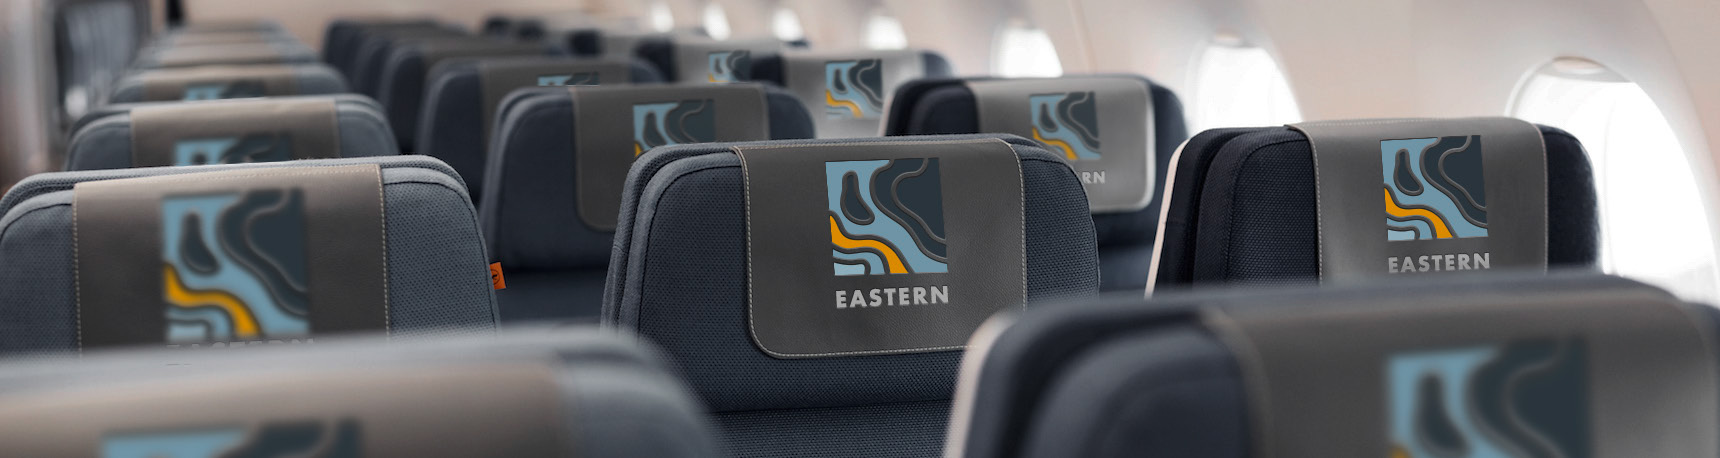 New Logo, Identity, and Livery for Eastern by Mechanica